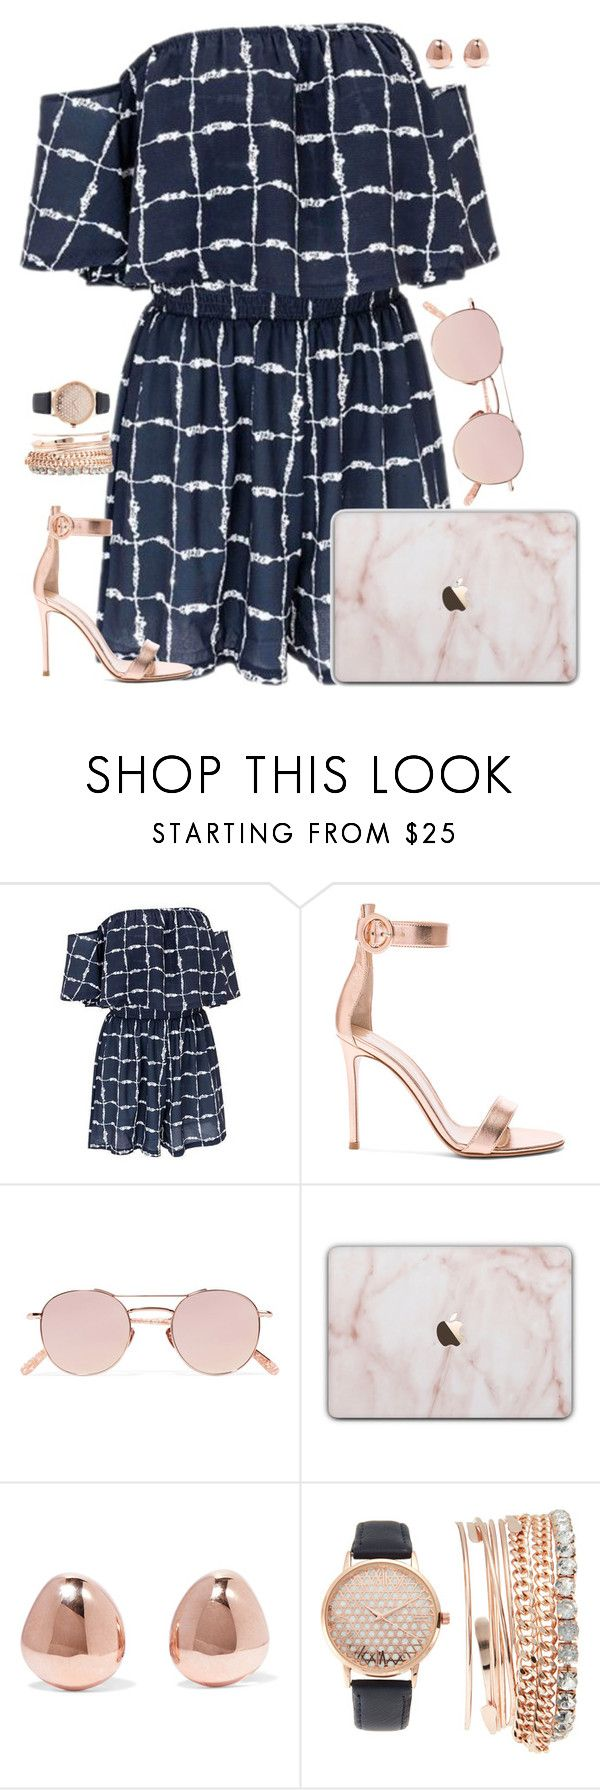 """""""Untitled #1347"""" by kitty-paws04 ❤ liked on Polyvore featuring Gianvito Rossi, Krewe, Monica Vinader and Jessica Carlyle"""